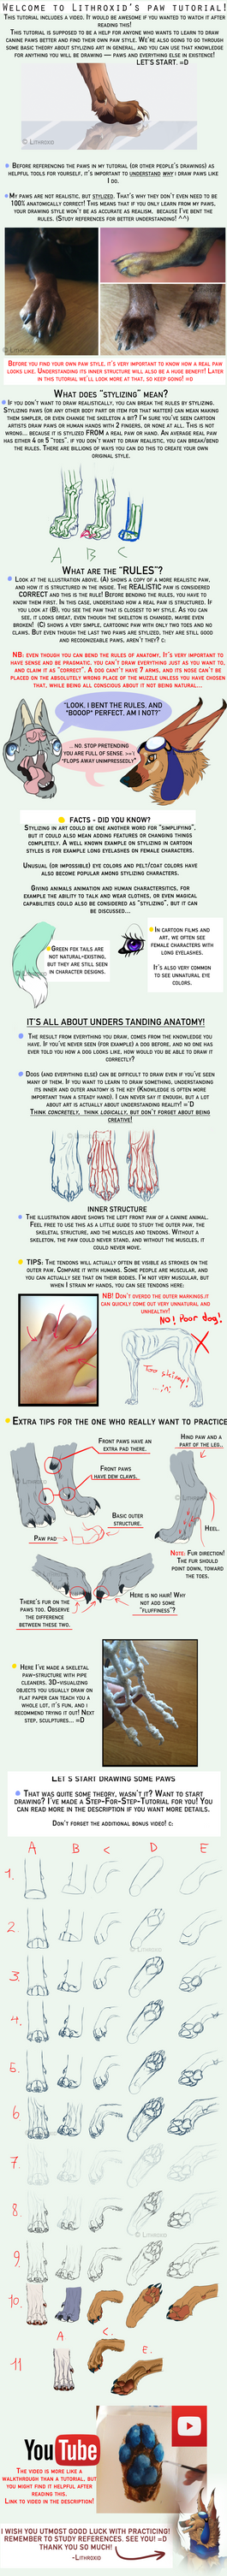 CANINE PAW TUTORIAL + VIDEO by Maditium